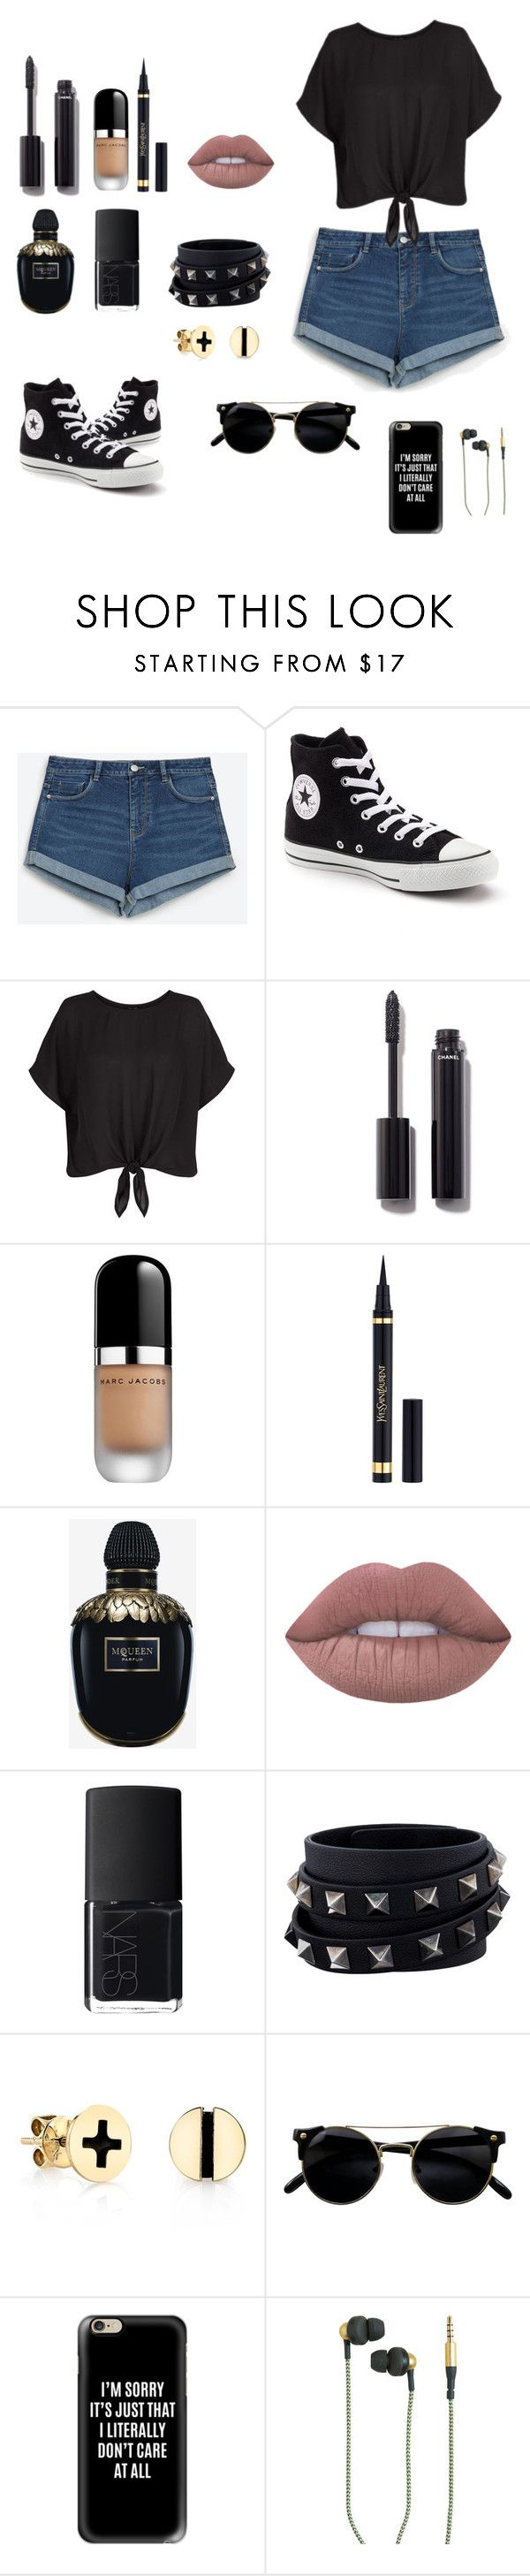 """Untitled #107"" by adinamihaelalupu ❤ liked on Polyvore featuring Zara, Converse, New Look, Chanel, Marc Jacobs, Yves Saint Laurent, Alexander McQueen, Lime Crime, NARS Cosmetics and Valentino"